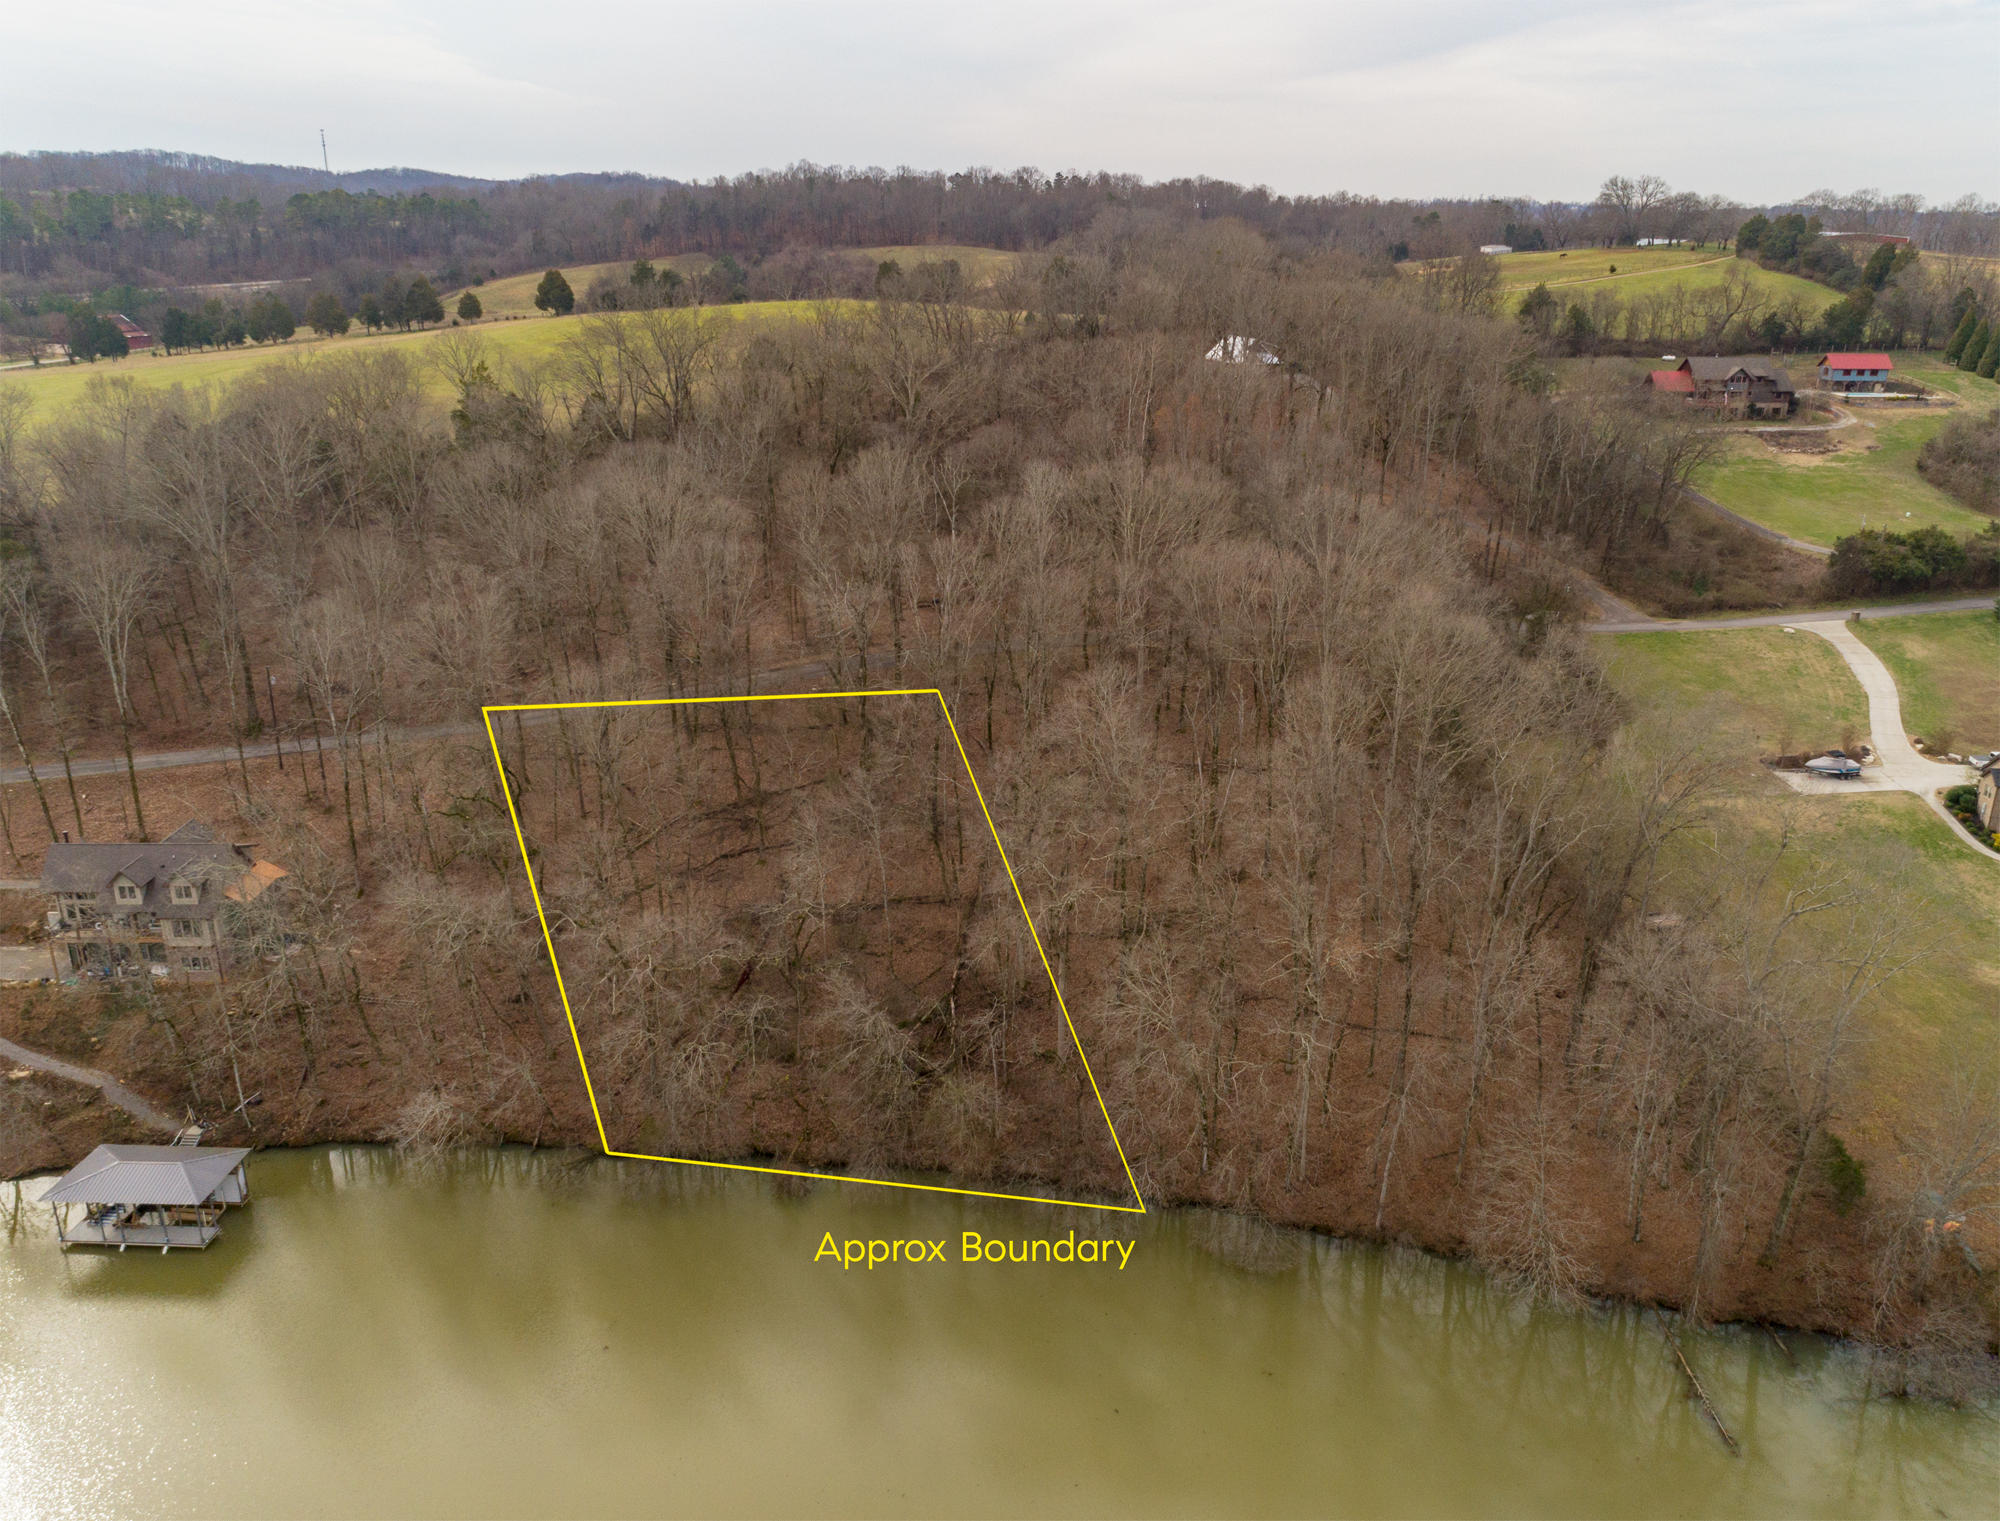 Lot A/0010 Hope Creek Rd: